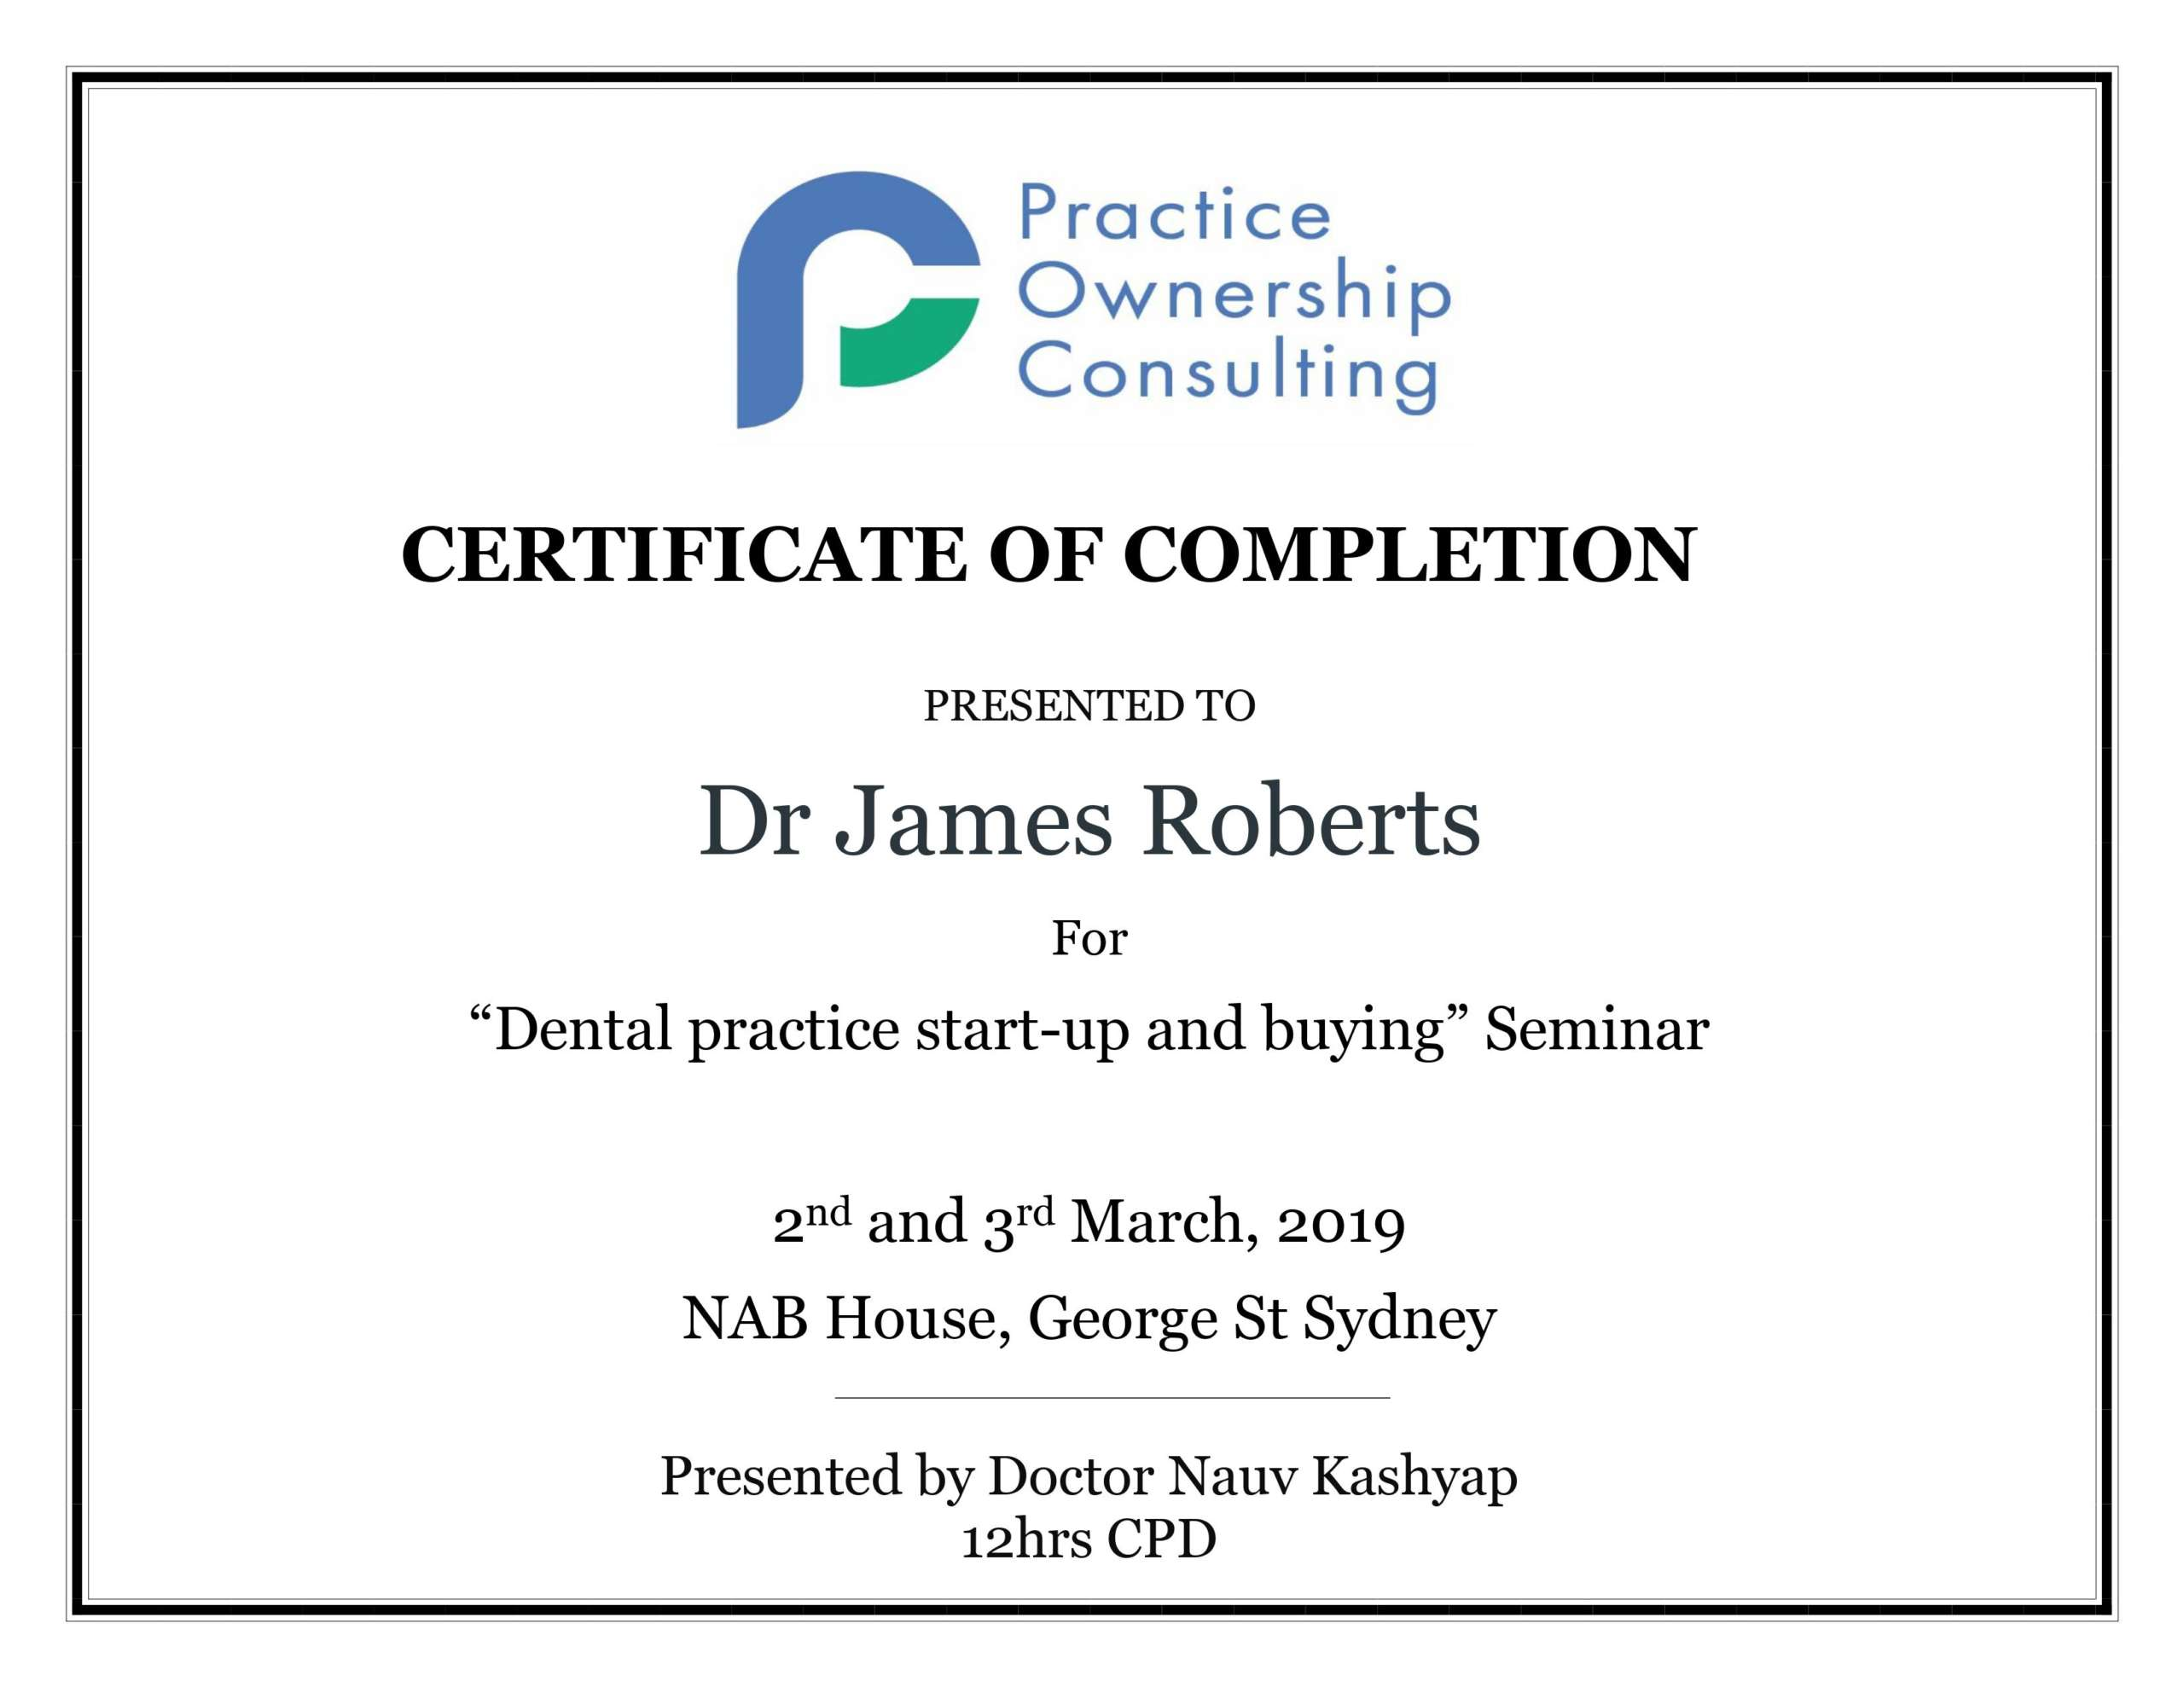 March 2019 – Participated in the Dental Practice Start-Up and Buying seminar